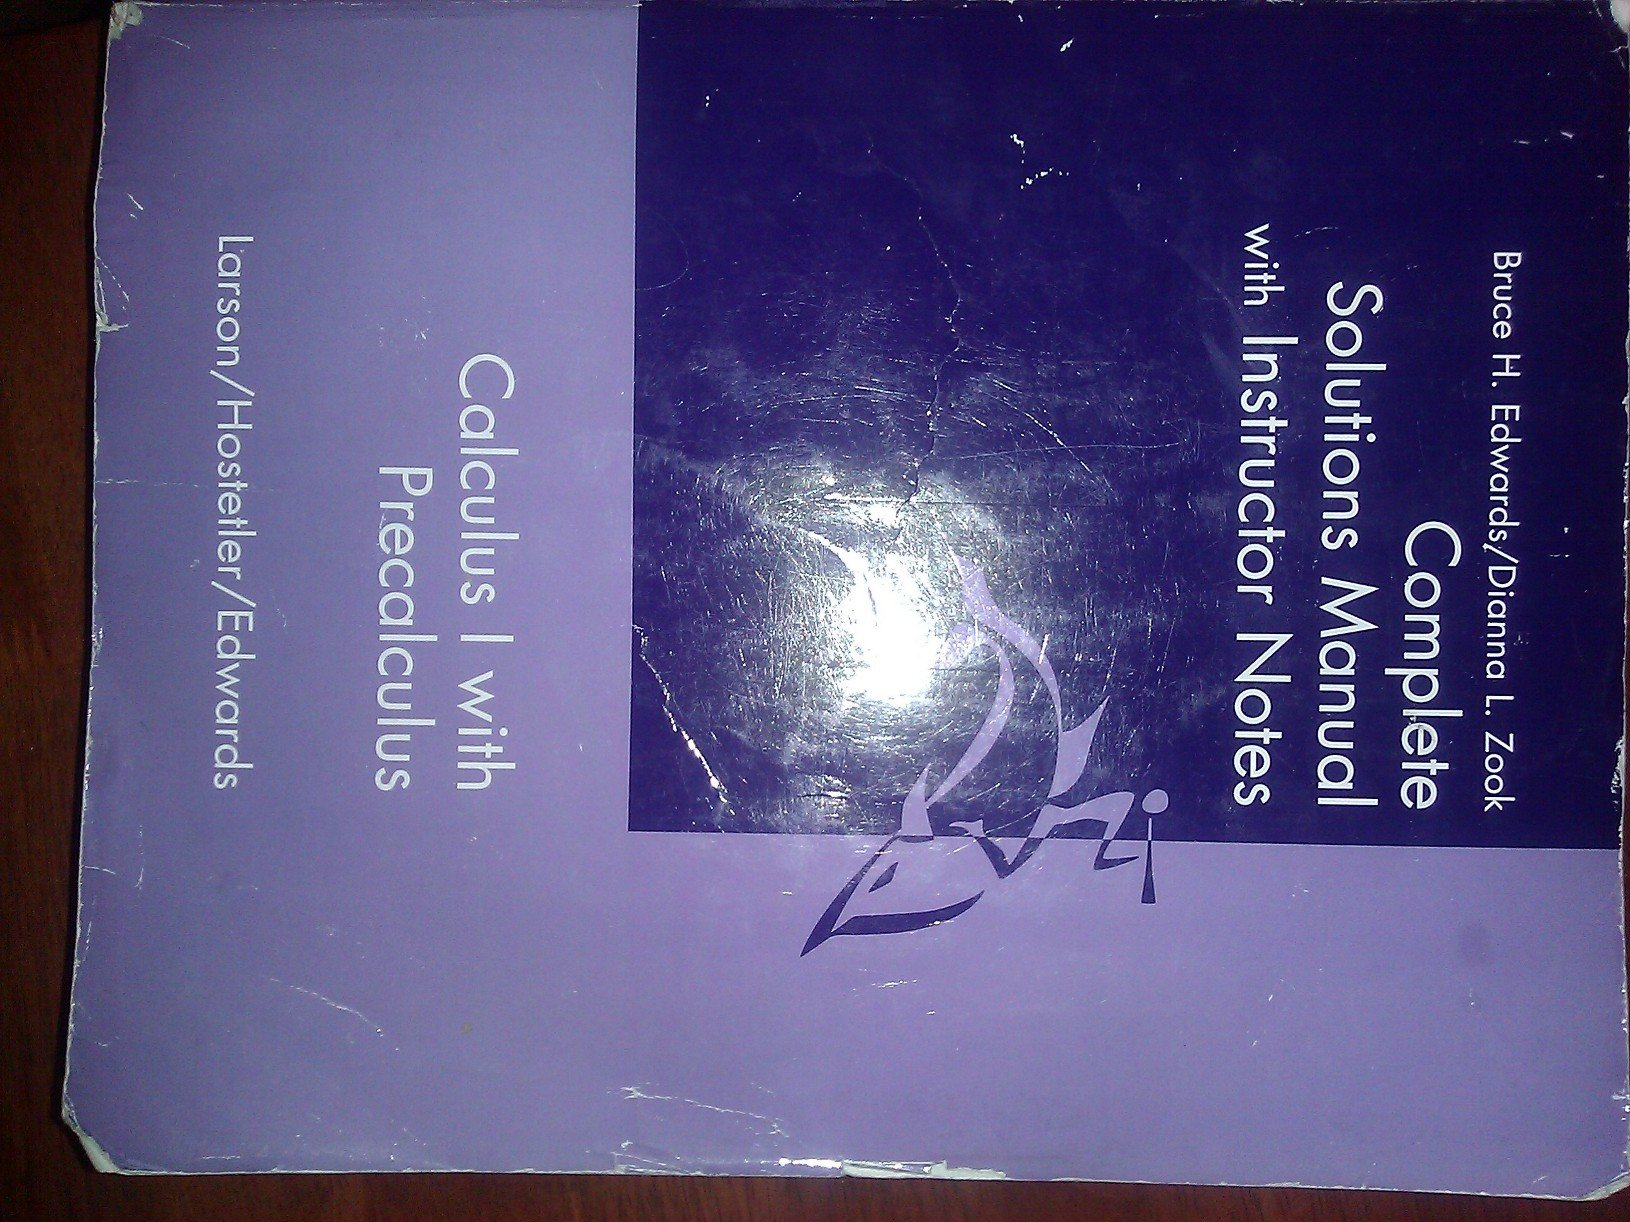 Complete Solutions Manual with Instructor Notes (Calculus 1 with  Precalculus): Bruce H. Edwards, Dianna L. Zook, Larson, Hostetler:  9780618087648: ...